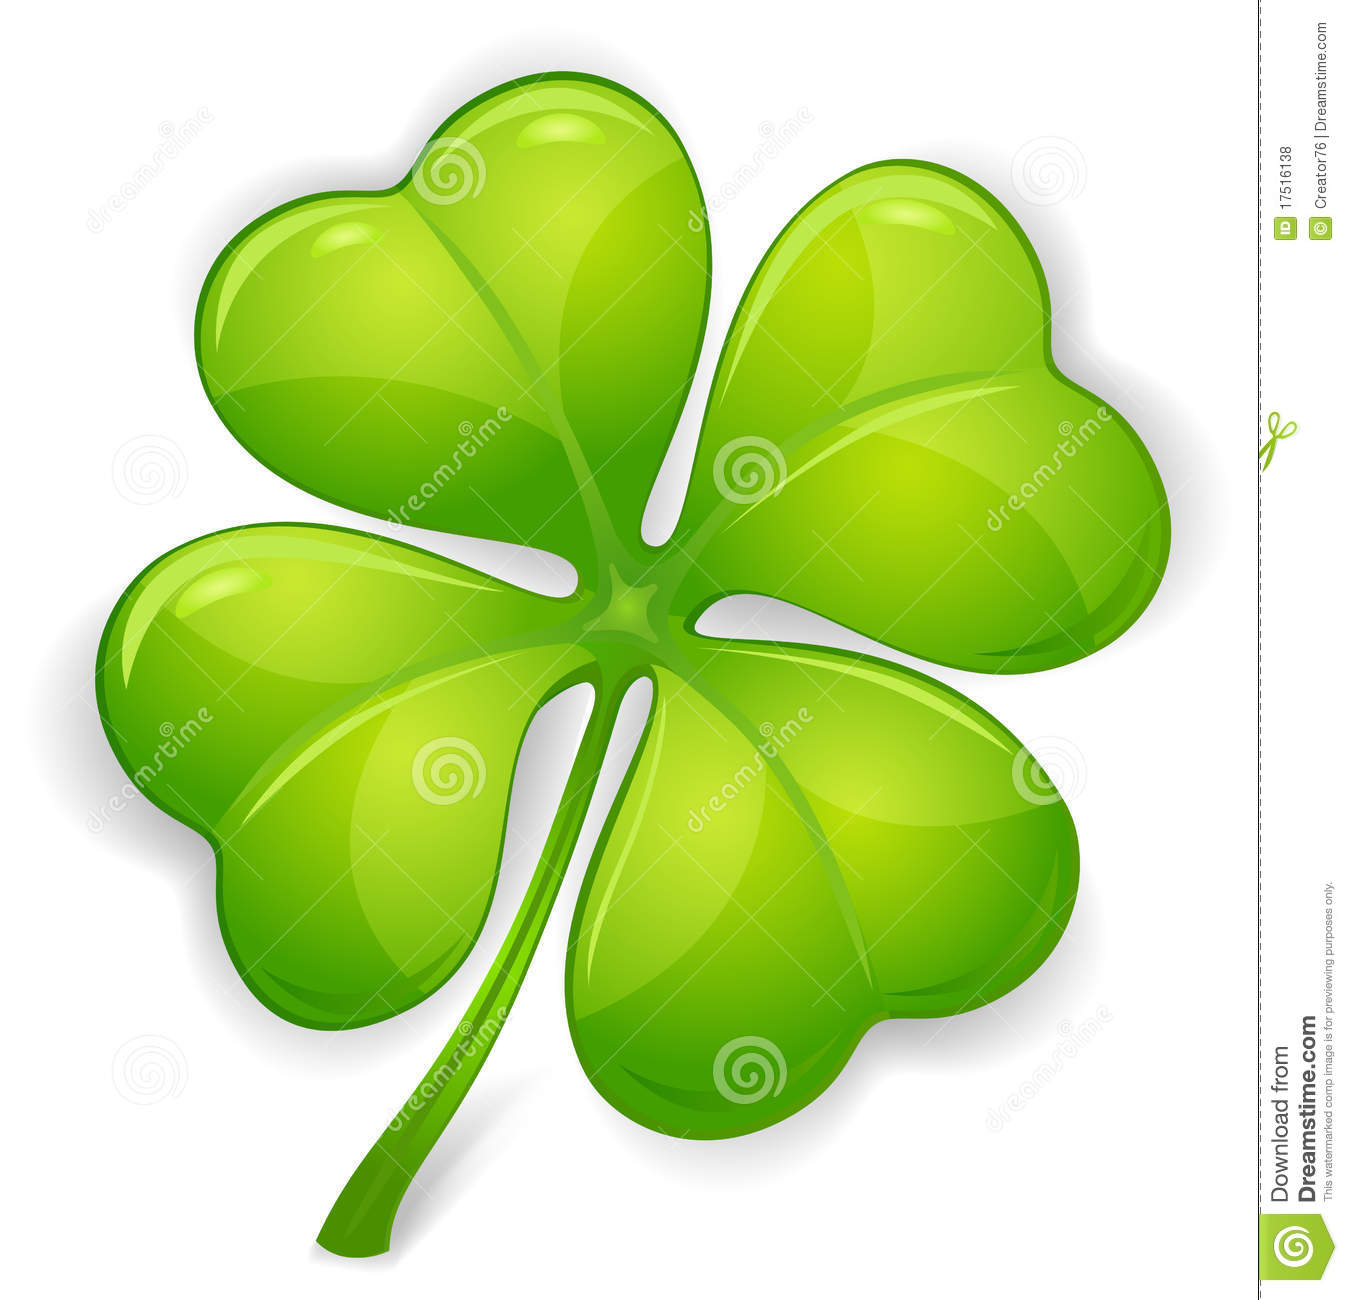 Four leaf clover isolated on white illustration for st patrick s day